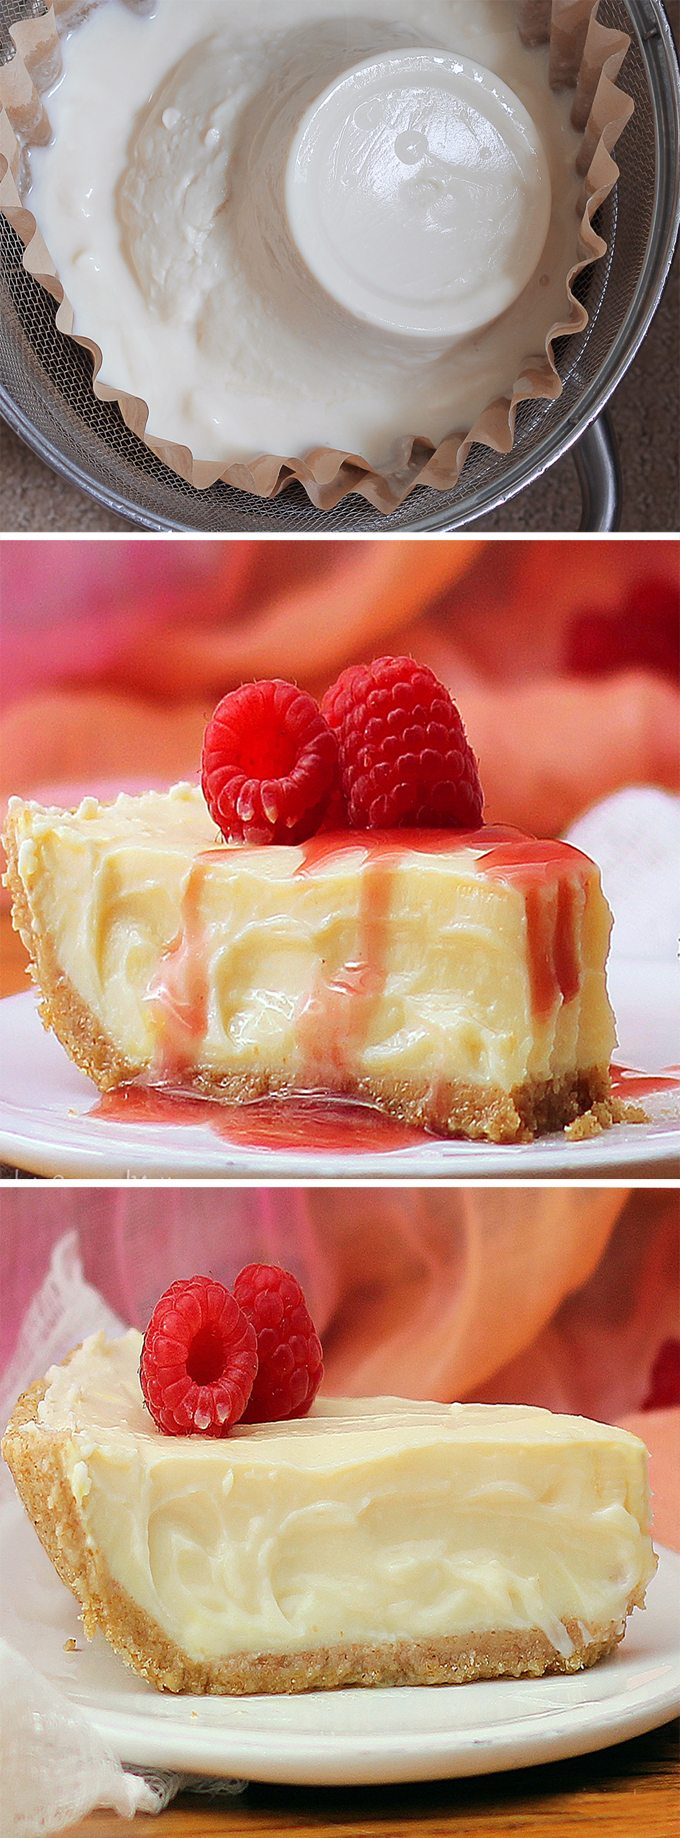 Greek Yogurt Cheesecake – Ingredients: 2 cups yogurt, 1/4 cup maple syrup, 1 tbsp lemon juice, pinch salt, 2/3 cup… Full recipe: http://choclatecoveredkatie.com @choccoveredkt